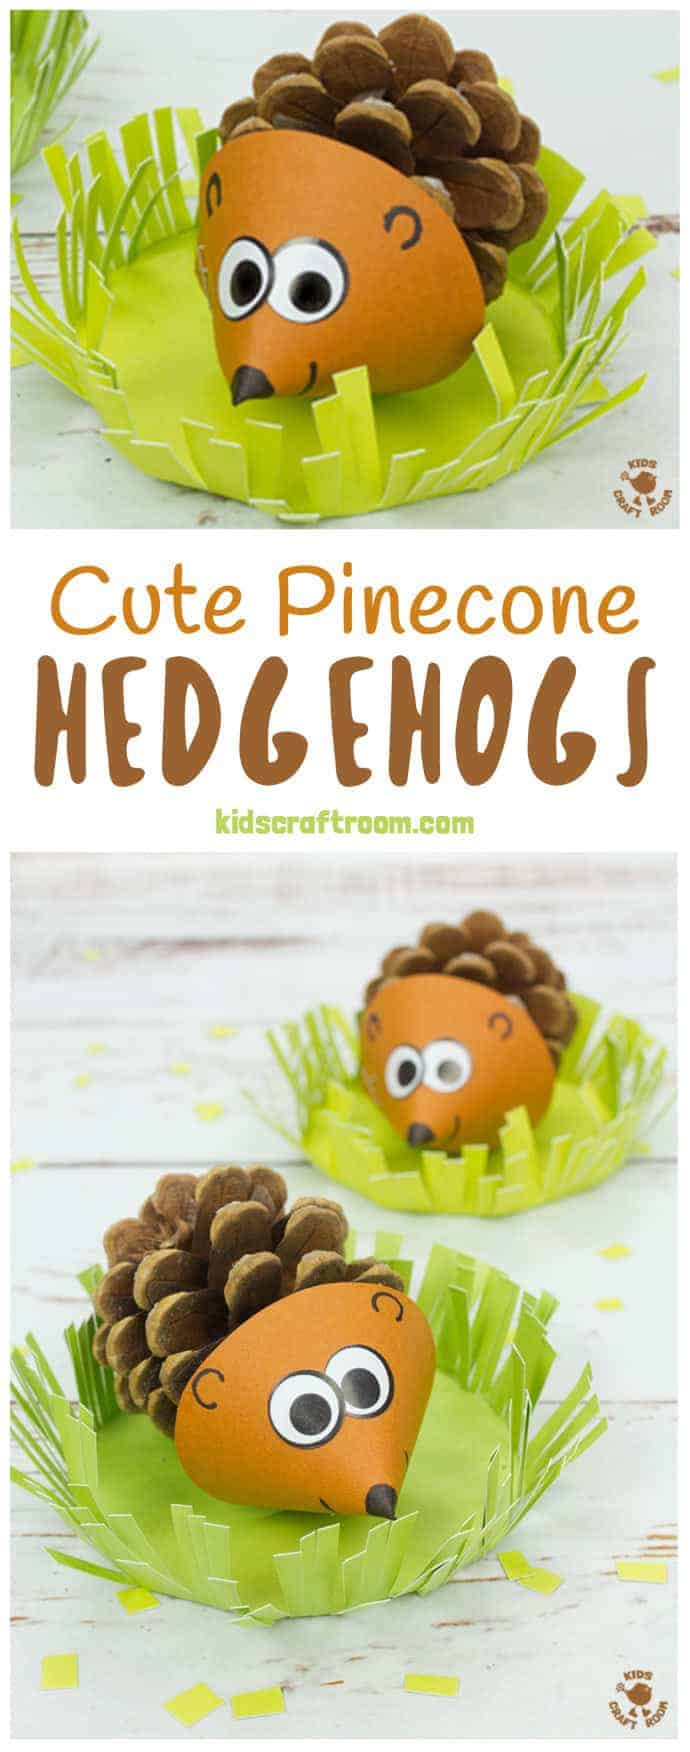 PINECONE HEDGEHOG CRAFT Do your kids like collecting pinecones? Turn them into adorable pinecone hedgehogs! These little hedgehogs sit in a grassy home where they can snuffle around for their dinner! We think these are the cutest pinecone animals ever! Such a lovely Fall craft for the kids. #pinecone #pinecones #hedgehog #hedgehogs #hedgehogcrafts #pineconecrafts #naturecrafts #Fallcrafts #Autumncrafts #Fall #Autumn #kidscrafts #kidscraft #craftsforkids